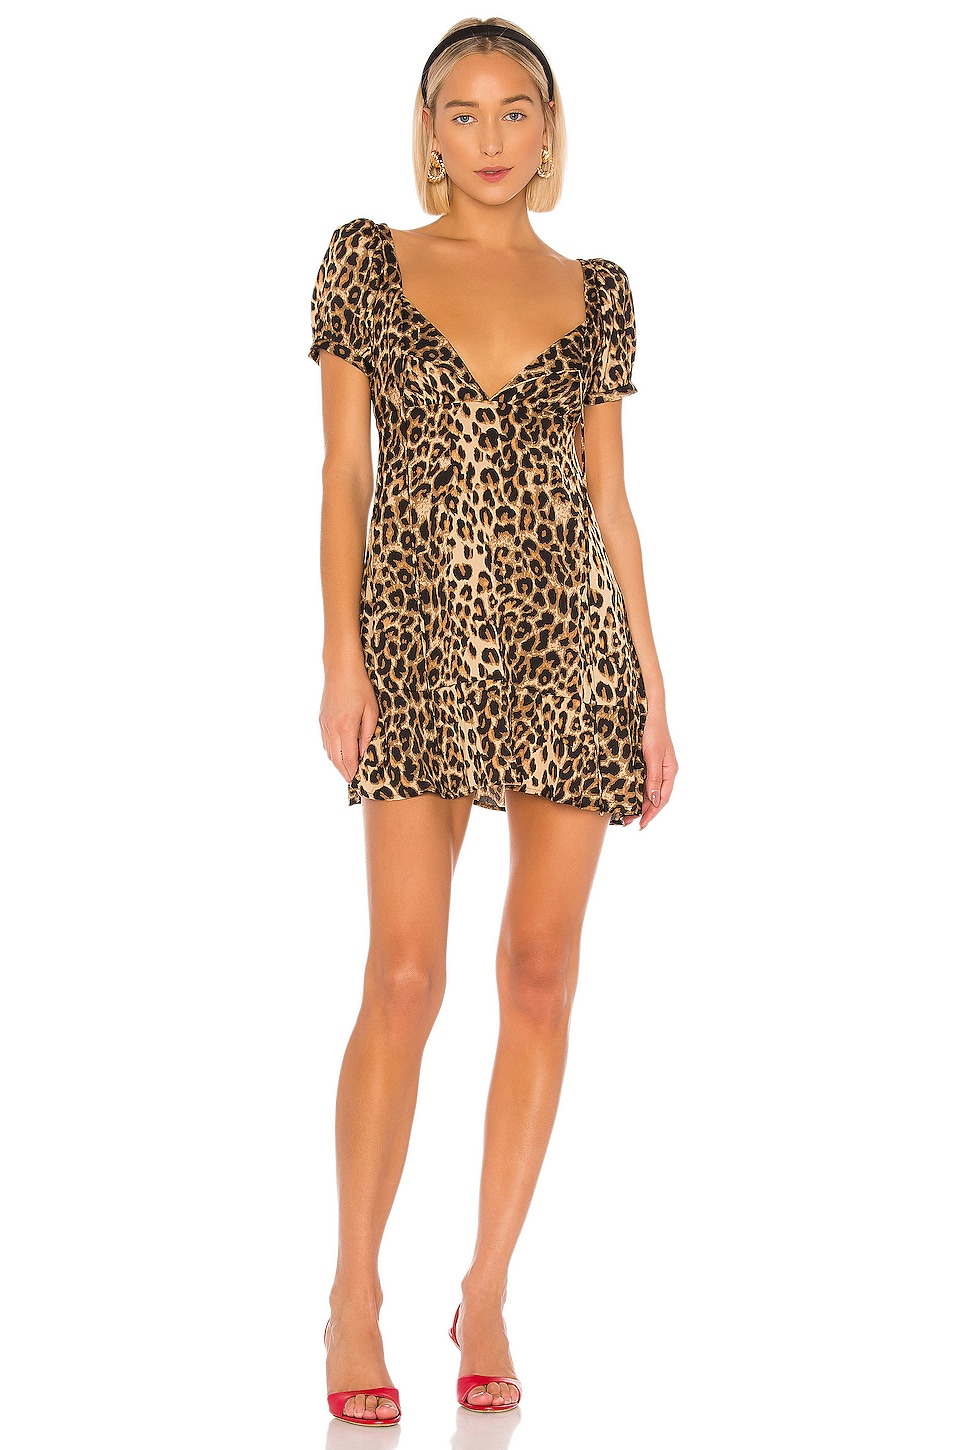 LPA Florentina Dress in Leopard